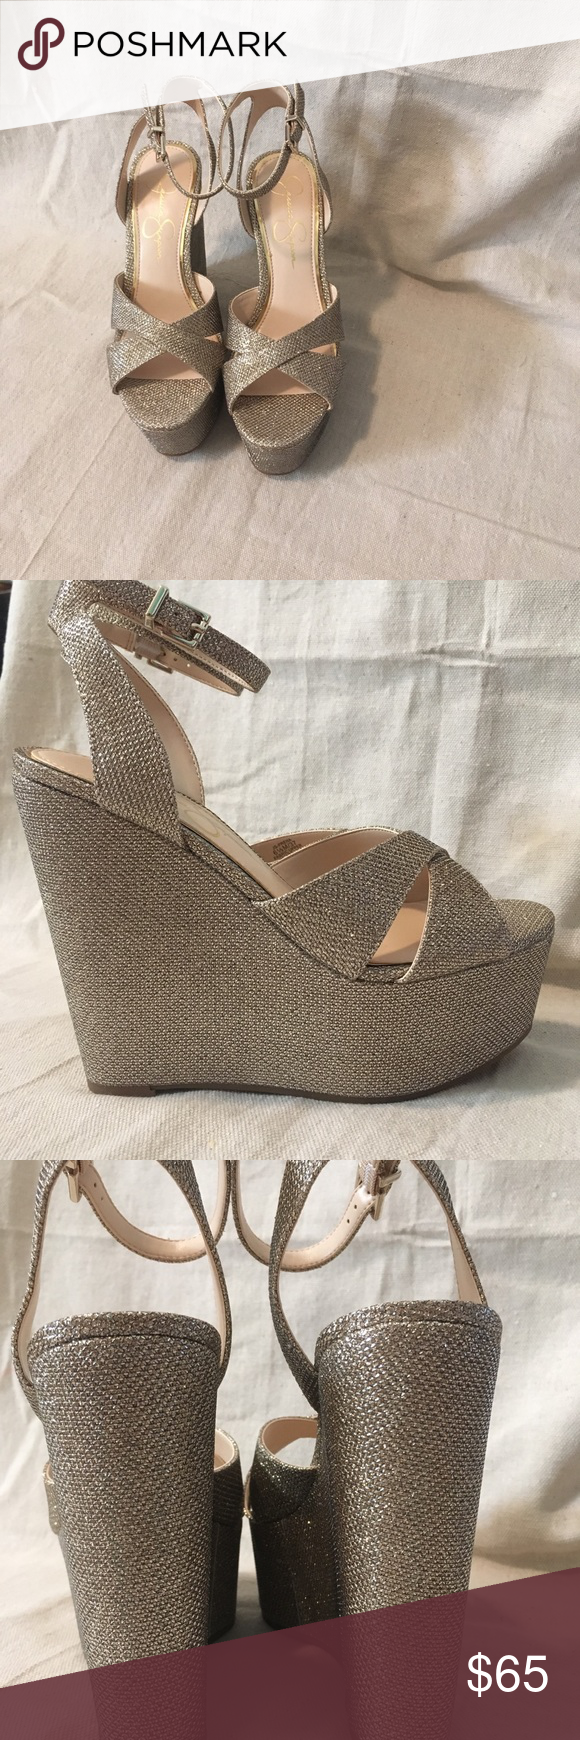 787d1449106 Jessica Simpson prena gold Jessica Simpson Prena platform wedge in gold  mesh. They are a